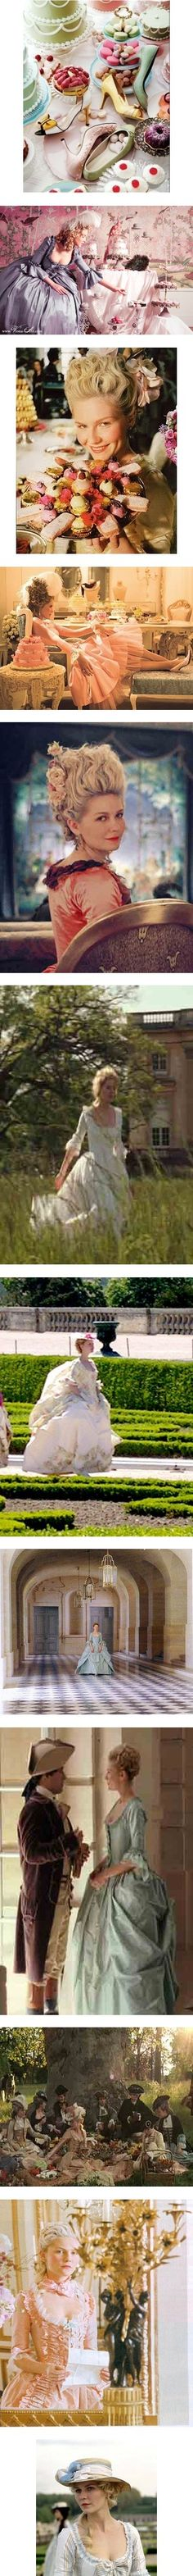 Marie Antoinette by libri on Polyvore featuring backgrounds, pictures, food, marie antoinette, photos, marie, models, pics, people and movies